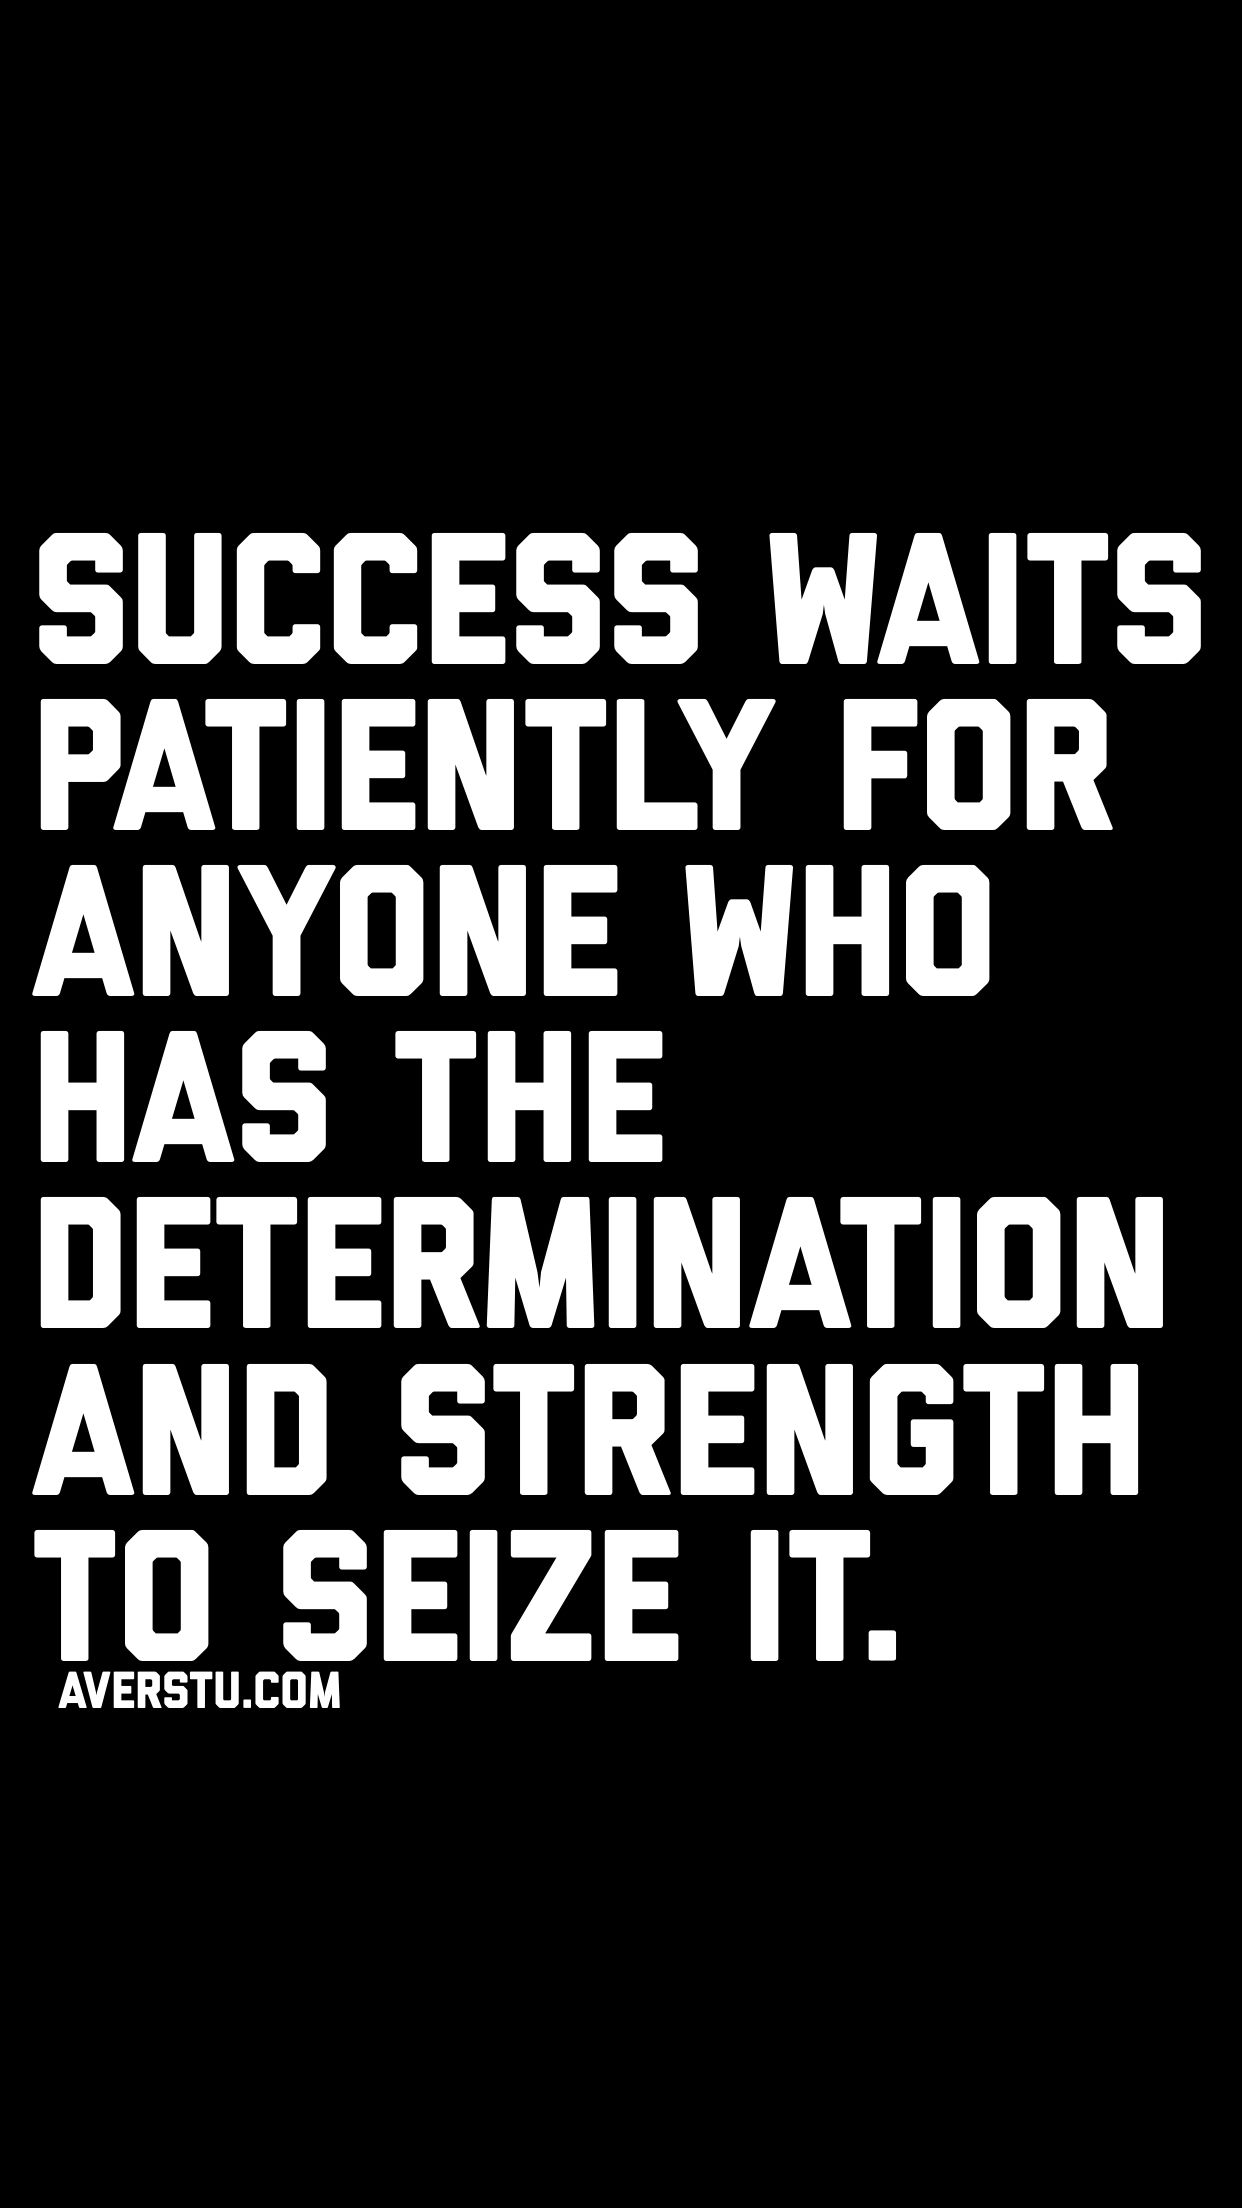 Success waits patiently for anyone who has the